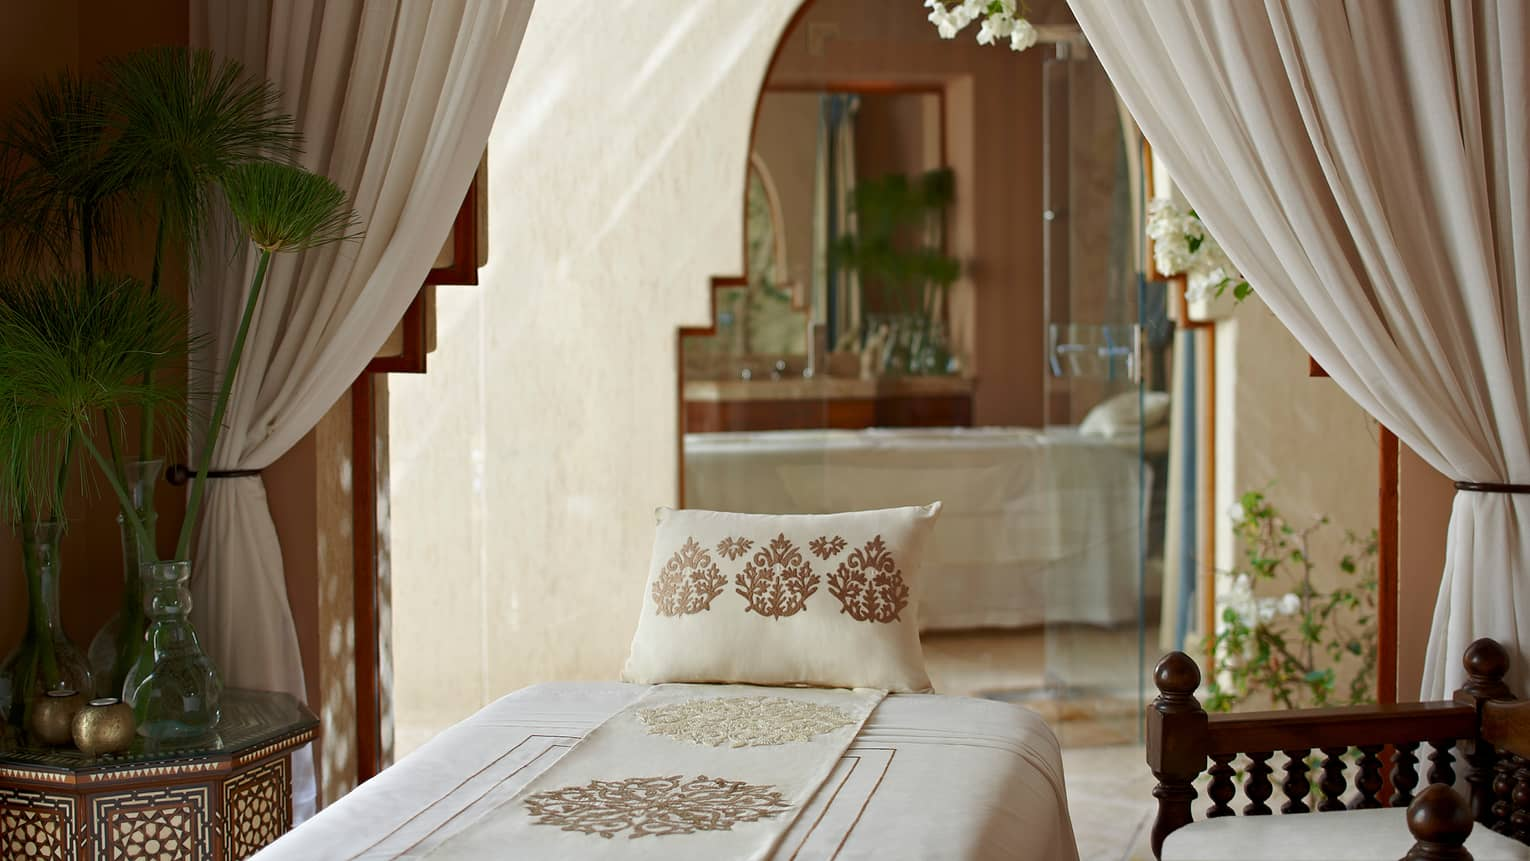 Embroidered pillow, sheet on massage table under white curtains, doorway in Spa